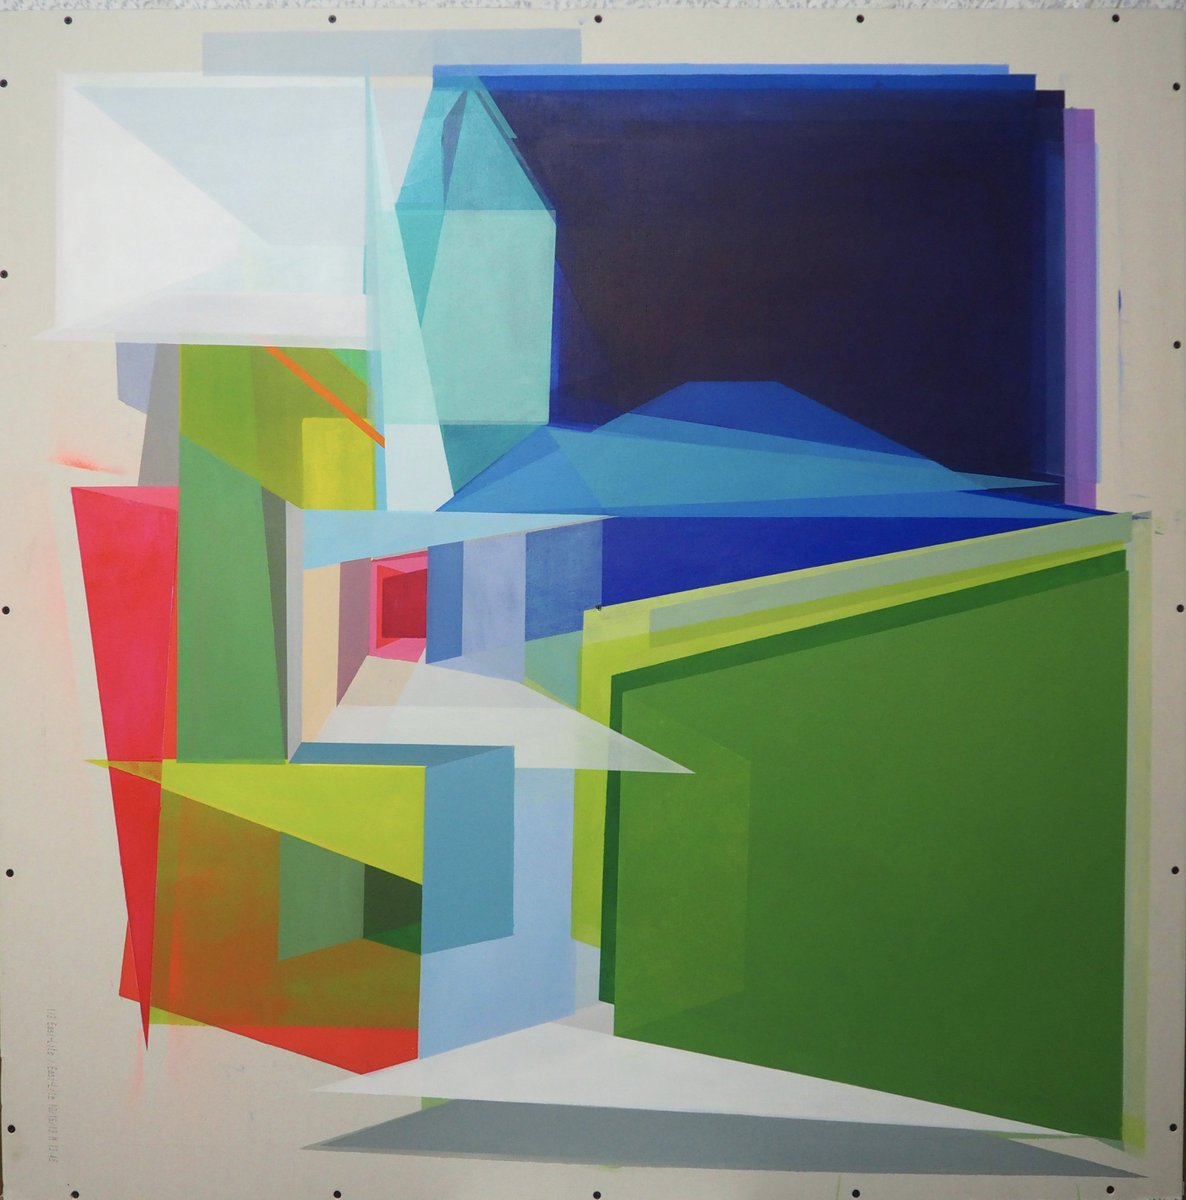 Good morning! #painting of @annielabbe_art!!!  http://www. invasionexpo.com  &nbsp;   to see more artworks!! #geometricart #geometric #invasionexpo #contemporaryart #architecturedesign #architectural #art #Quebec #mixedmediaart #canadianartist #colorful #abstractart<br>http://pic.twitter.com/u1rJs8fiIK